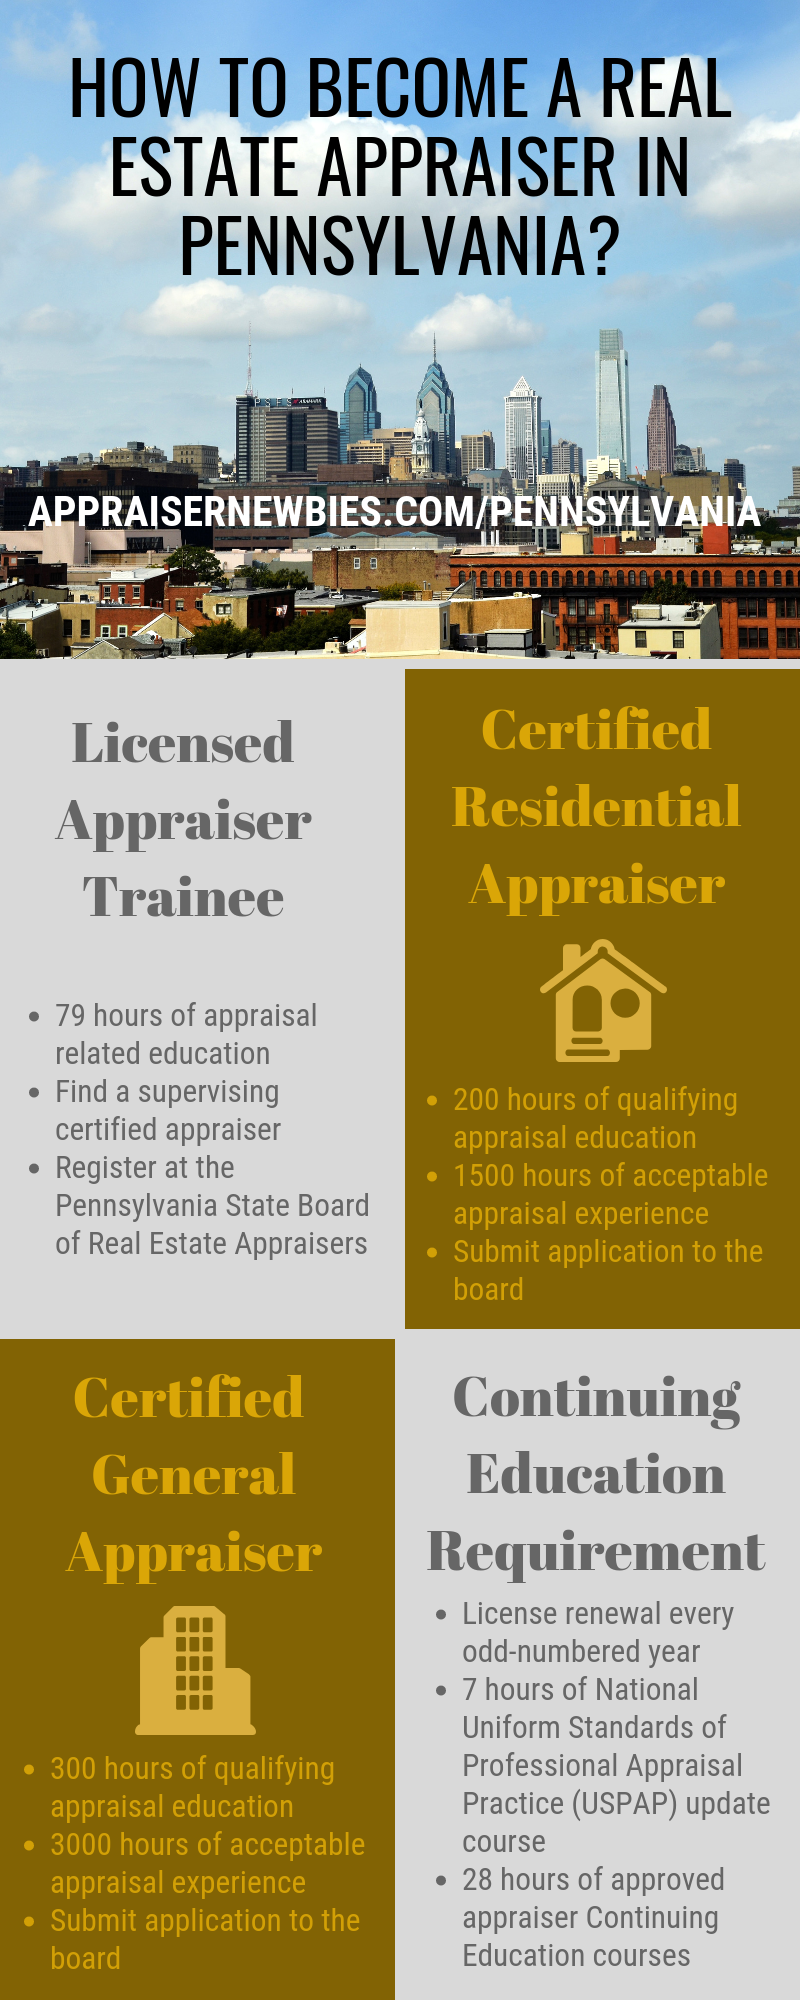 To Become A Real Estate Appraiser In Pennsylvania You Need To Fulfill The Education And Work Experience Requirement P Work Experience How To Become Appraisal